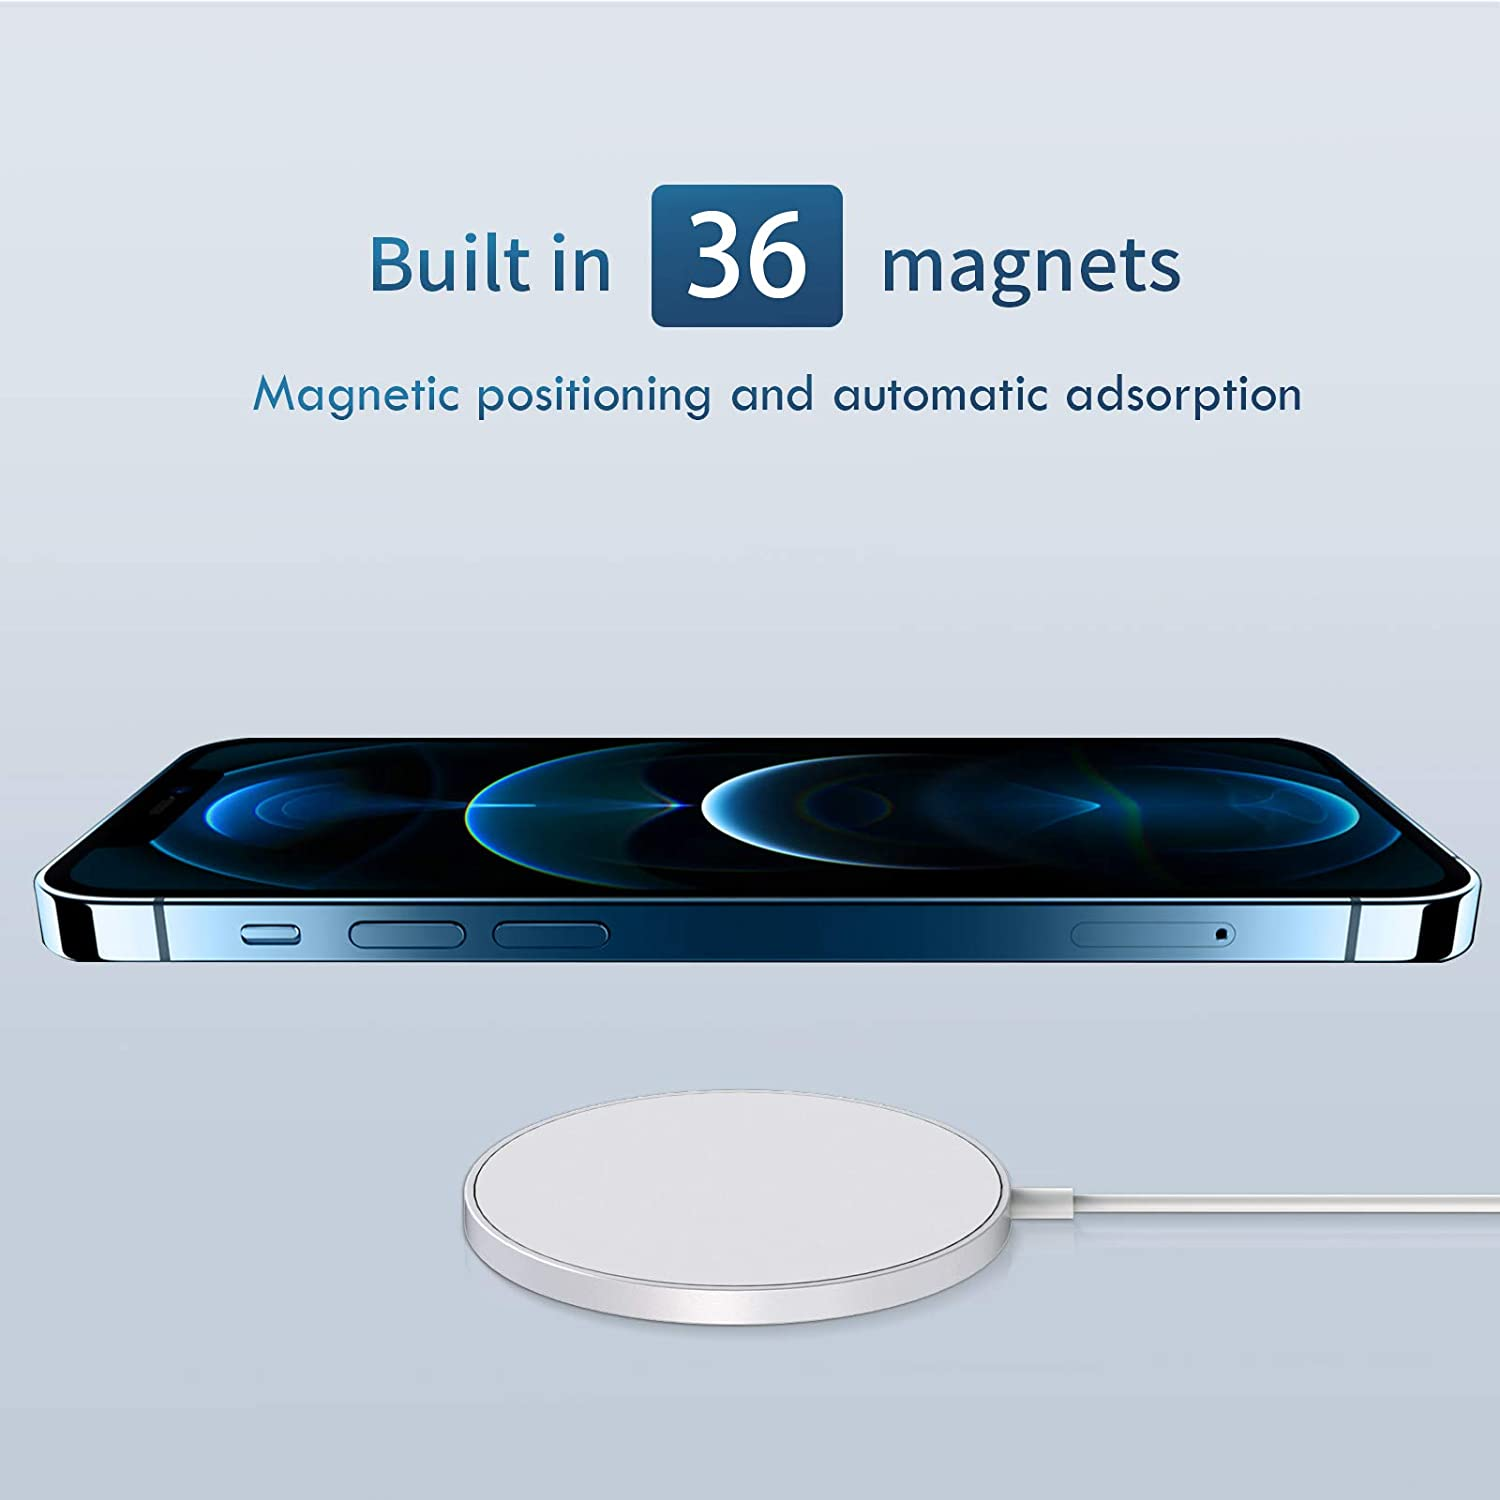 Fast_Charging_Magnetic_Wireless_Charger_Details_2